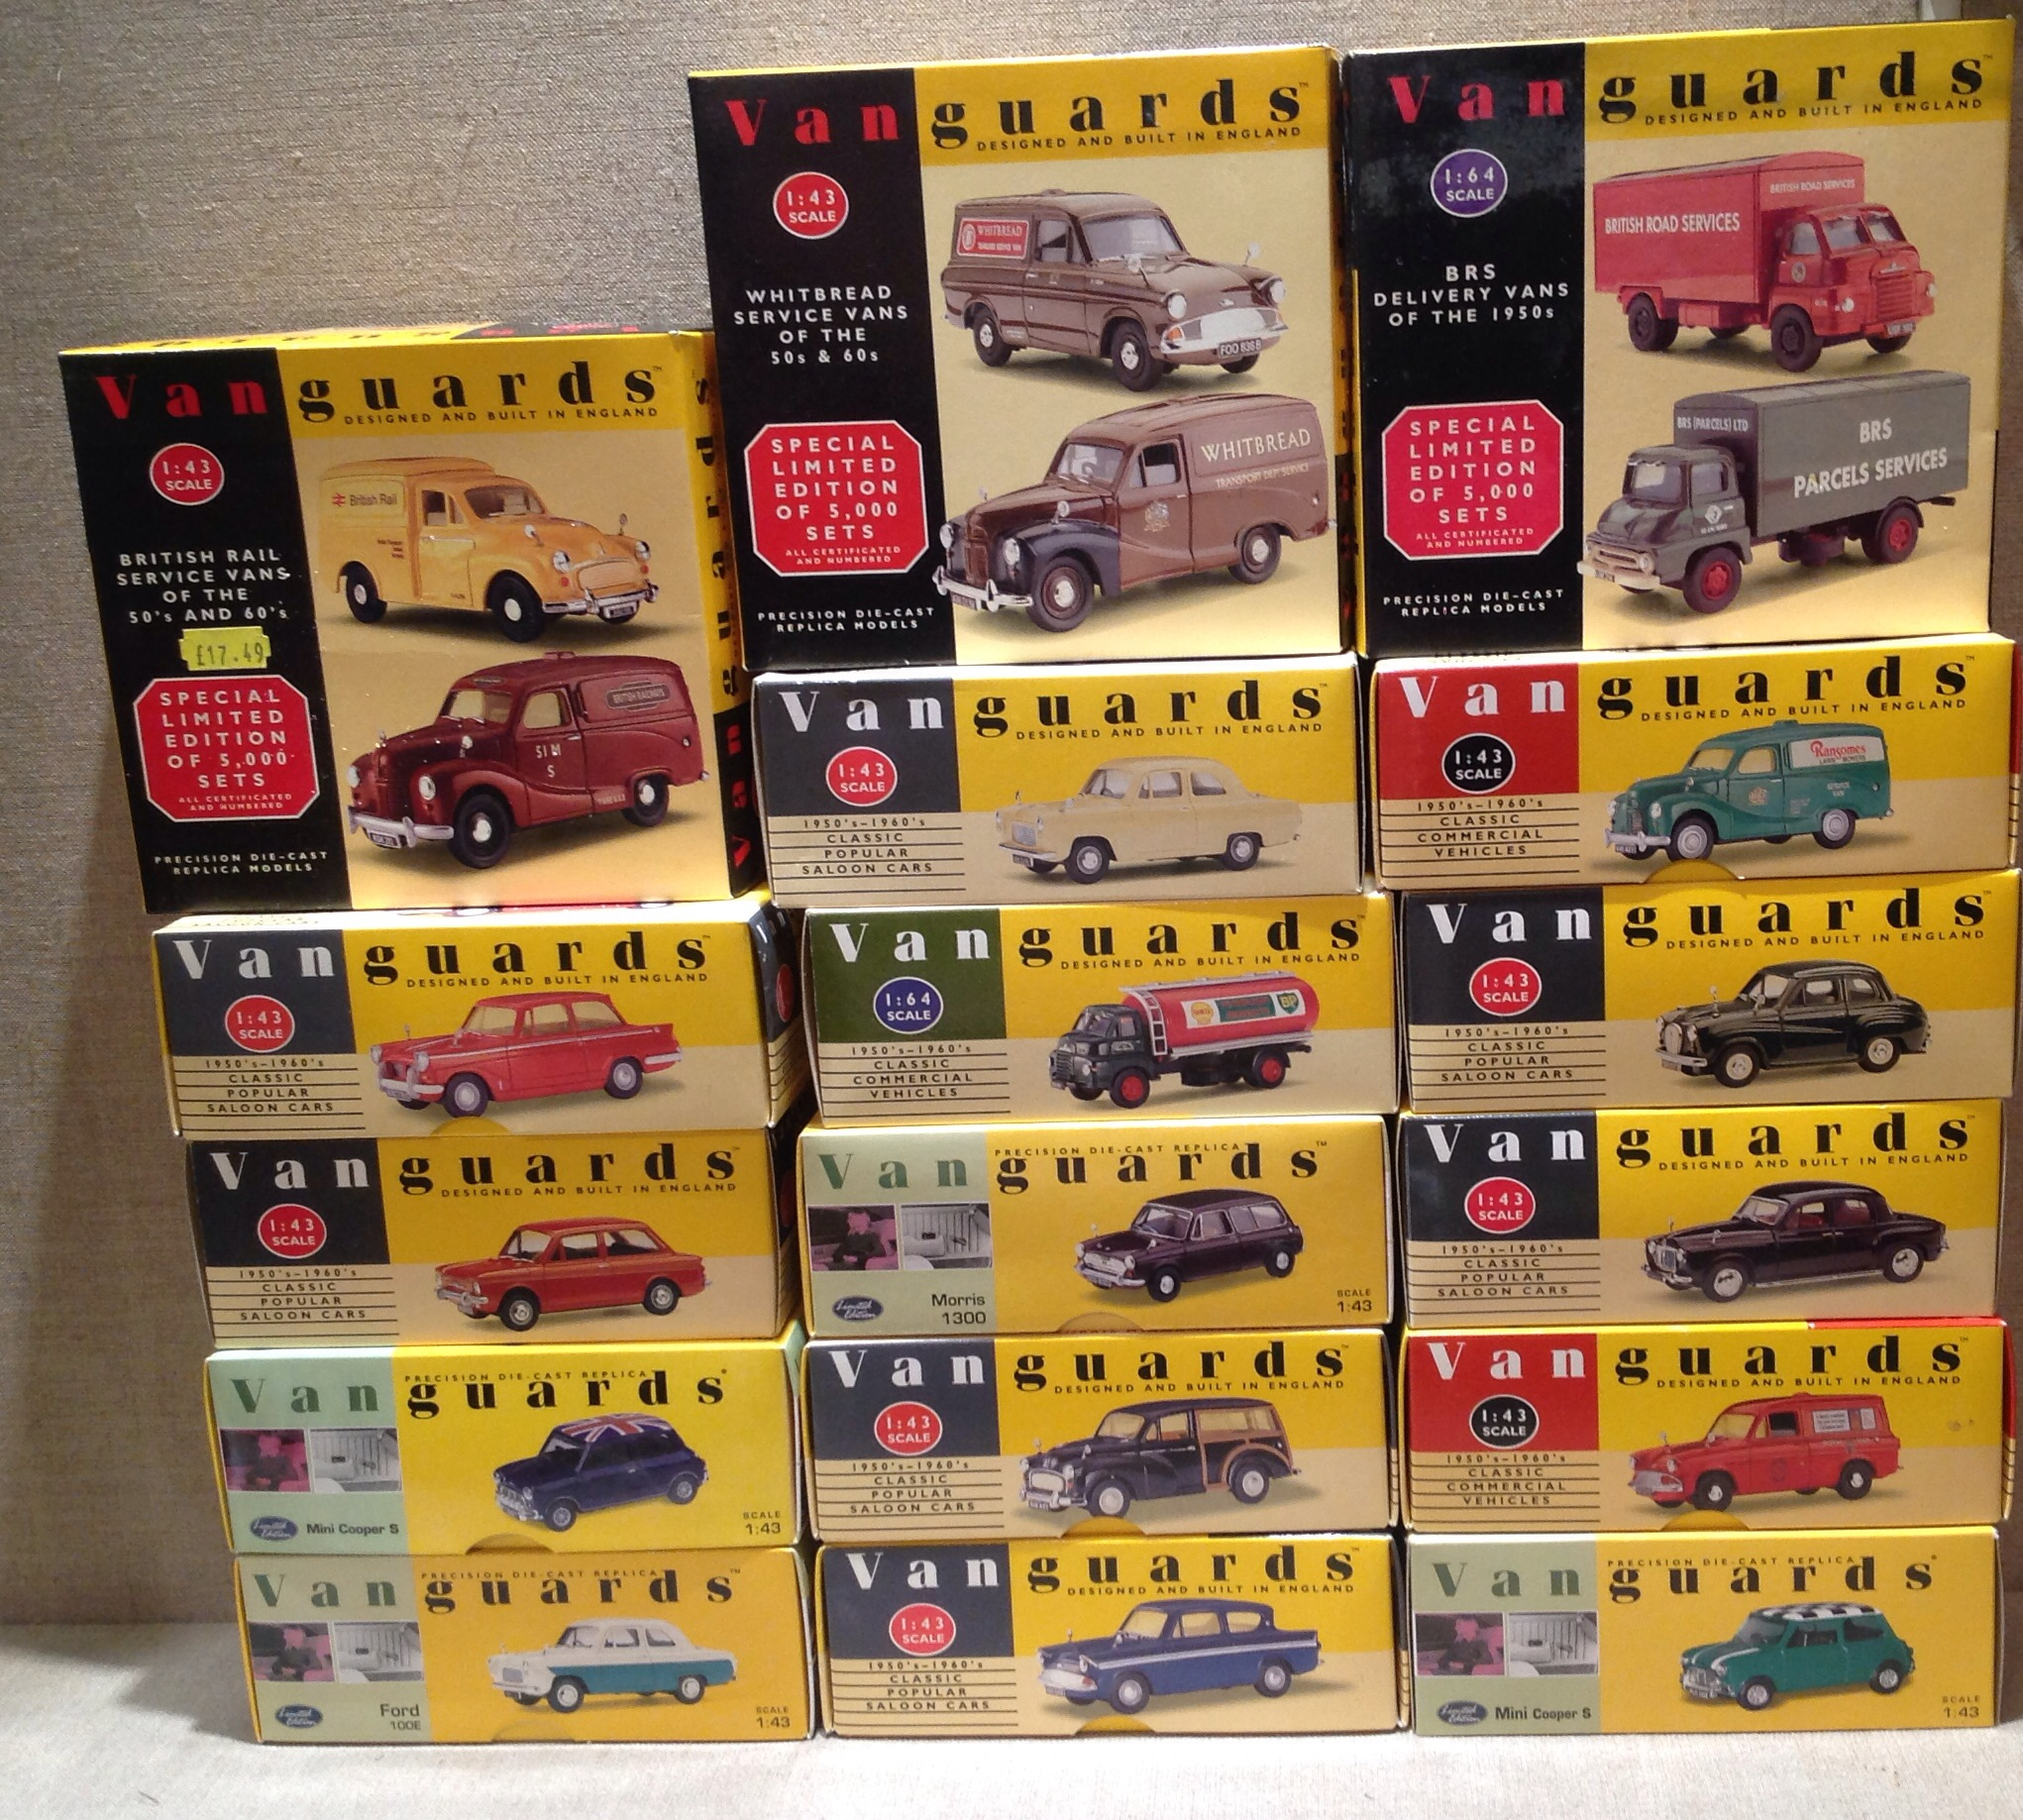 A 20TH CENTURY COLLECTION OF SEVENTEEN VANGUARDS MODEL CARS AND VANS ...